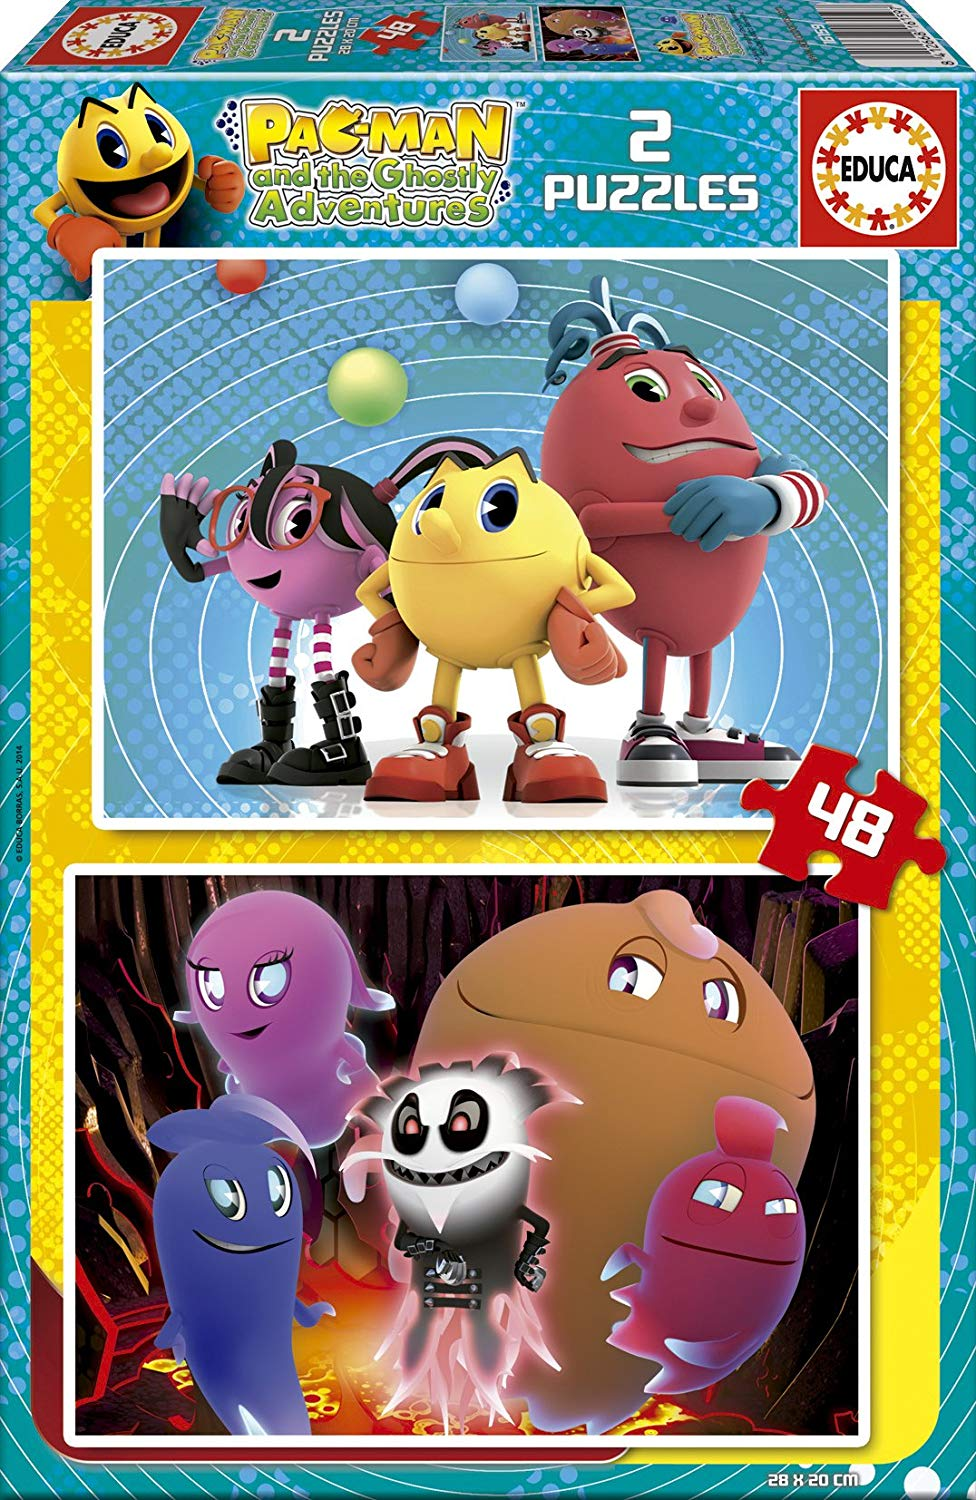 2-puzzles-pac-man